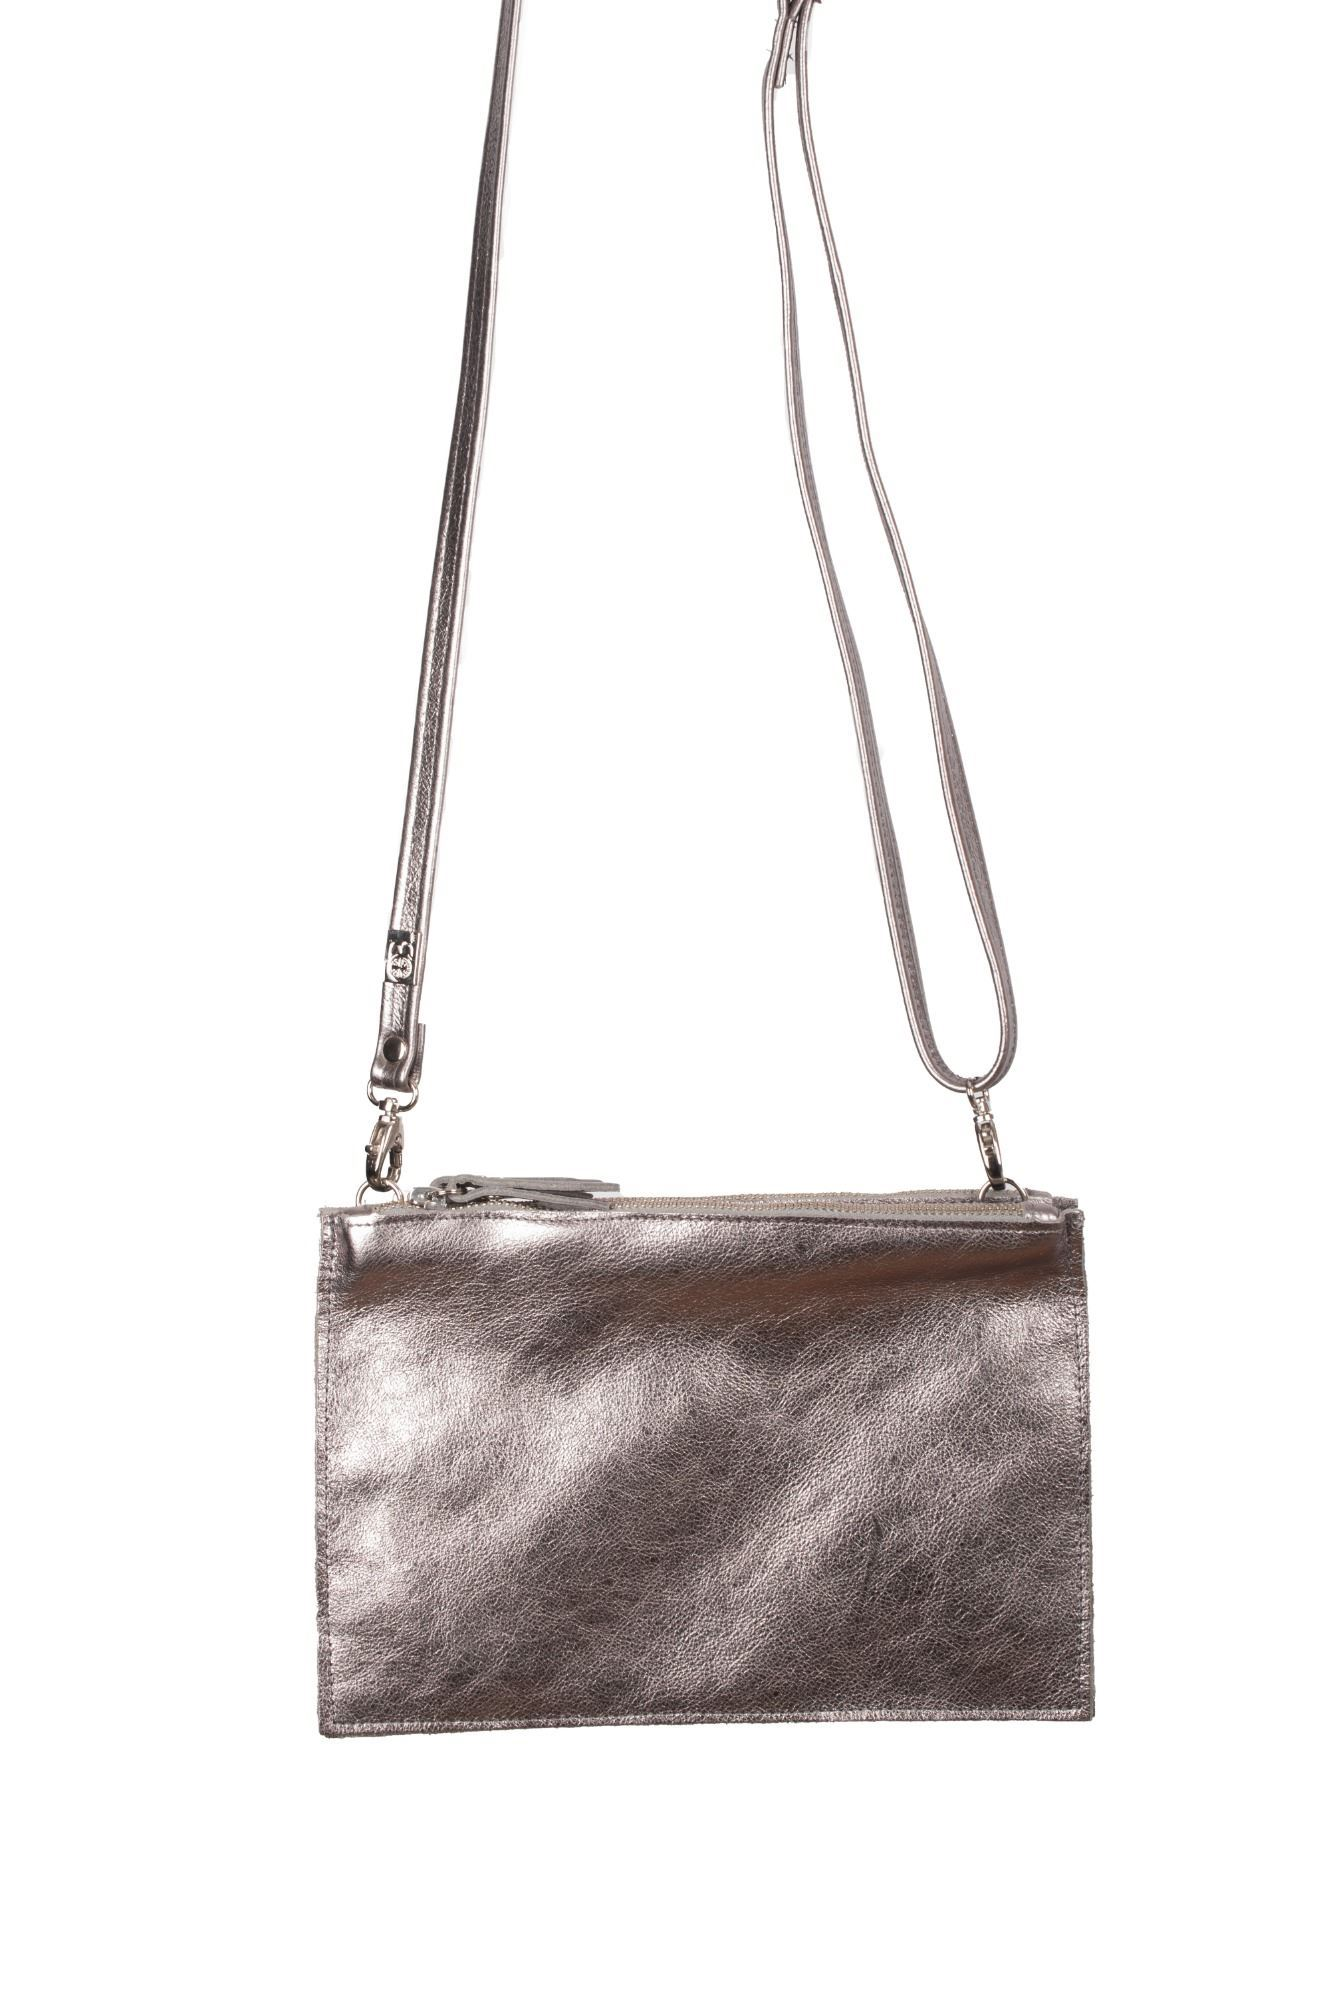 Leather Crossbody/Clutch Bag Tin - Thermus